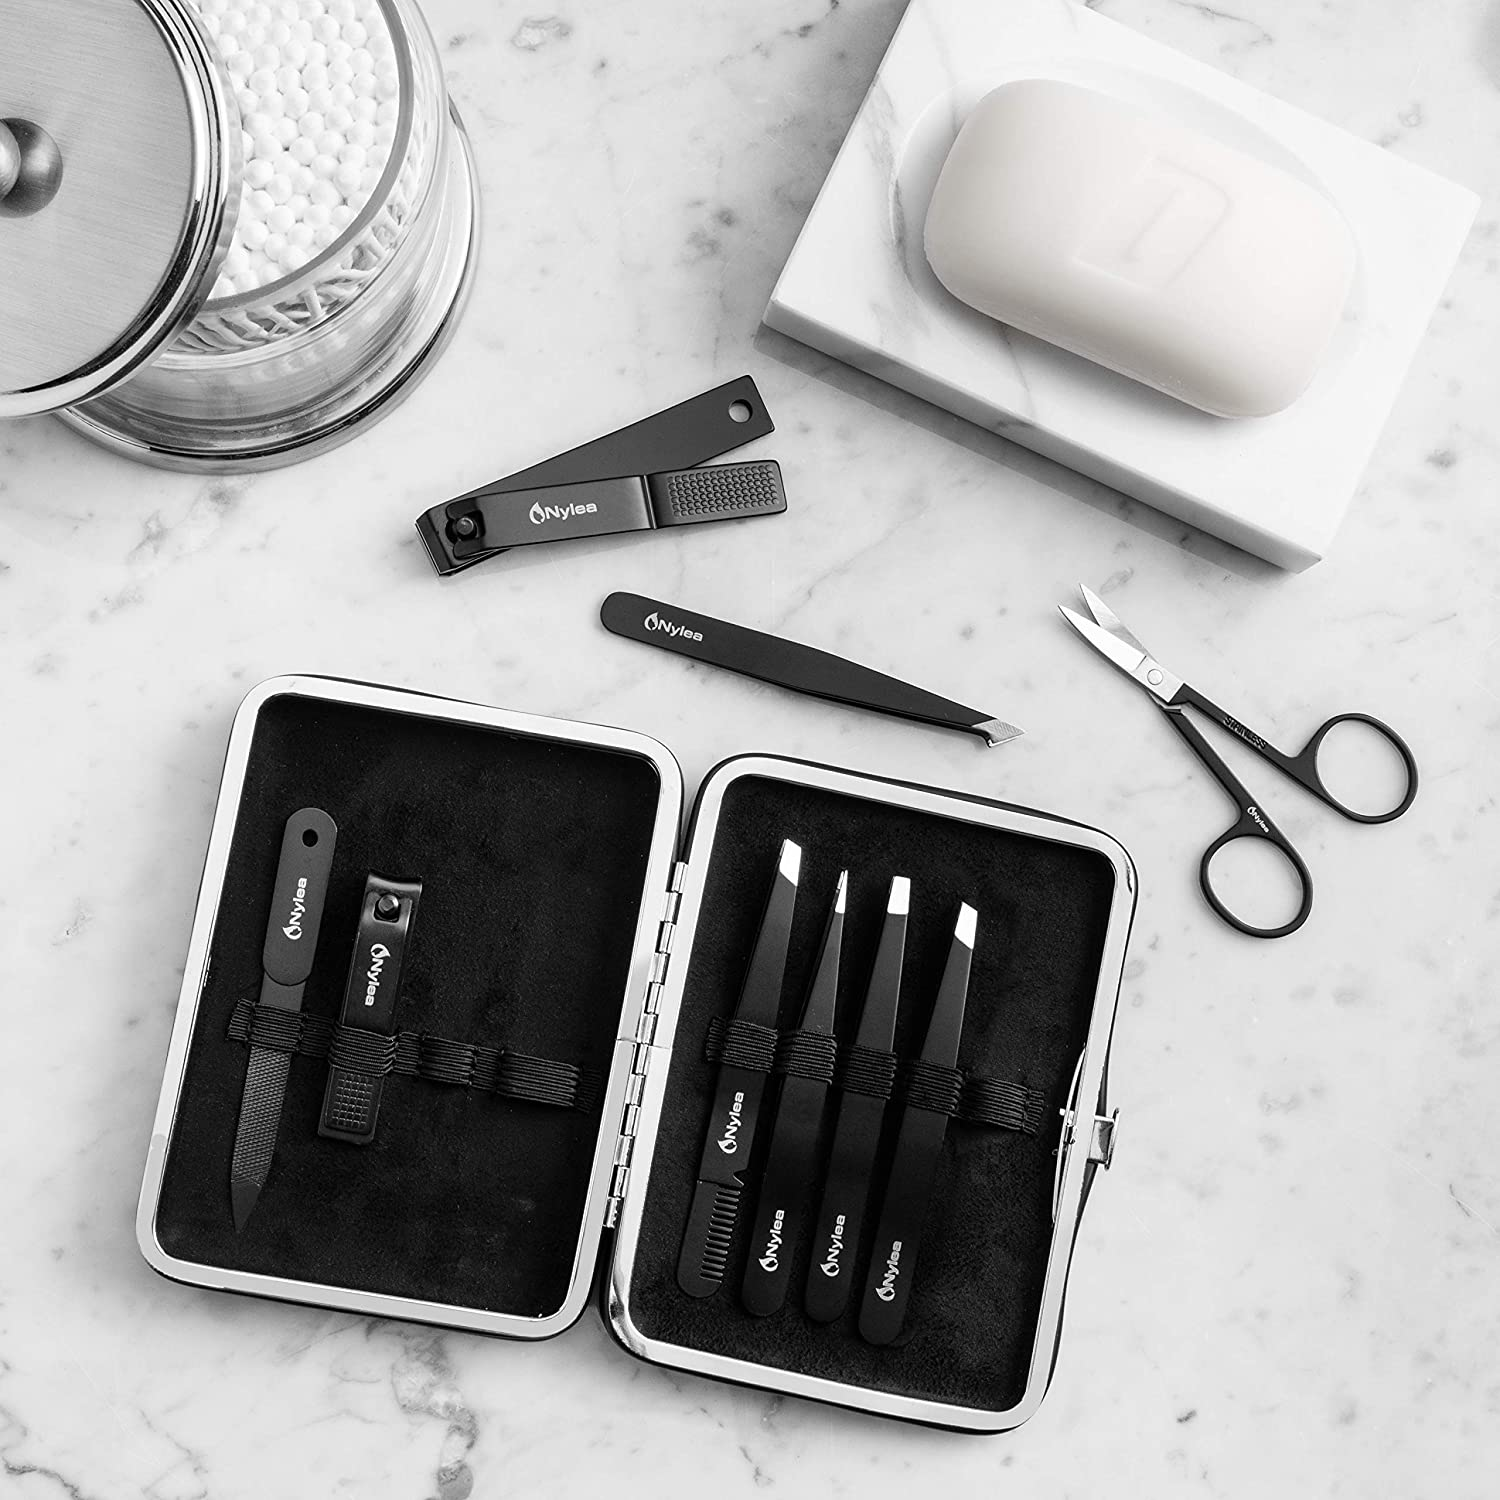 Nylea 9pcs Precision Tweezers with Nail Clippers Set - Stainless Steel Slant Pedicure Scissors for Toe Nail, Eyelashes Eyebrows Extensions, Ingrown Hair - Acrylic Thick Fingernails for Men & Women : Beauty